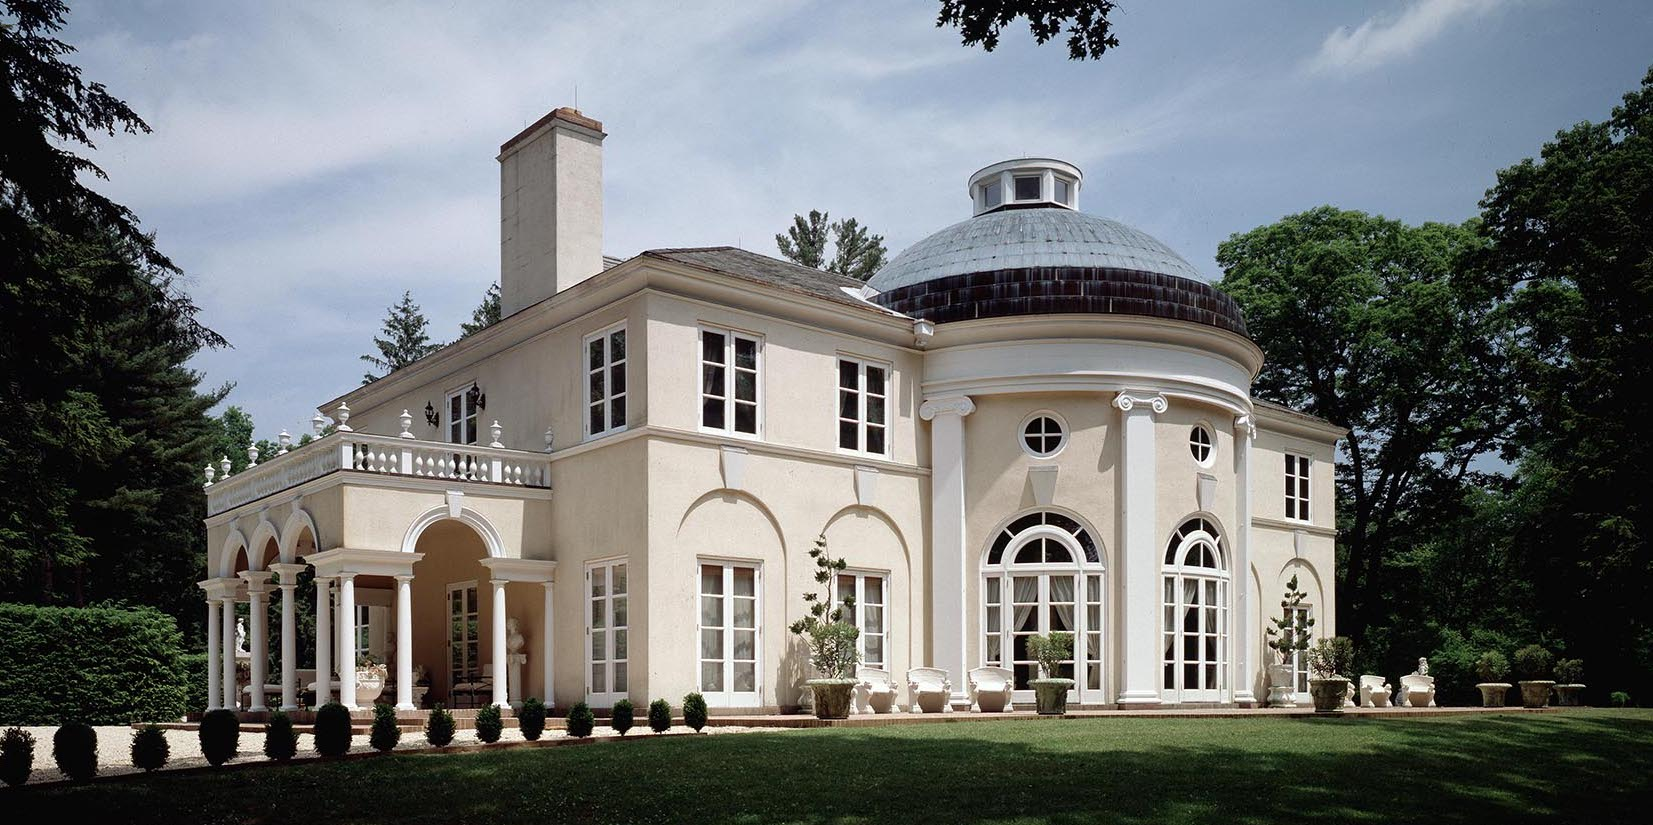 New Canaan's Huckleberry House Designed by Allan Greenberg Sells for $3.5M (PHOTOS)